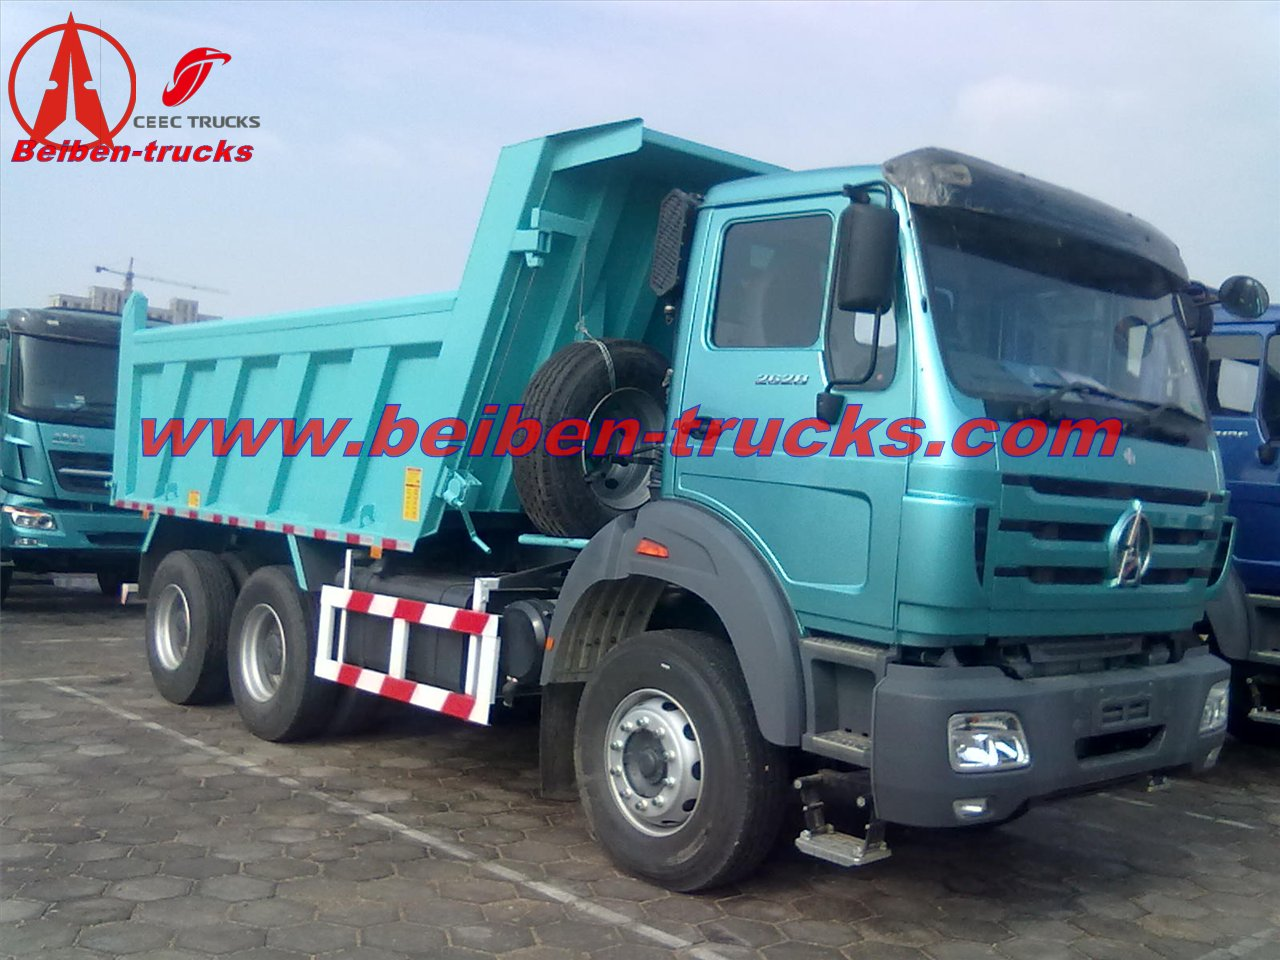 Durable Beiben NG80 Heavy Duty 6x4 dumper truck